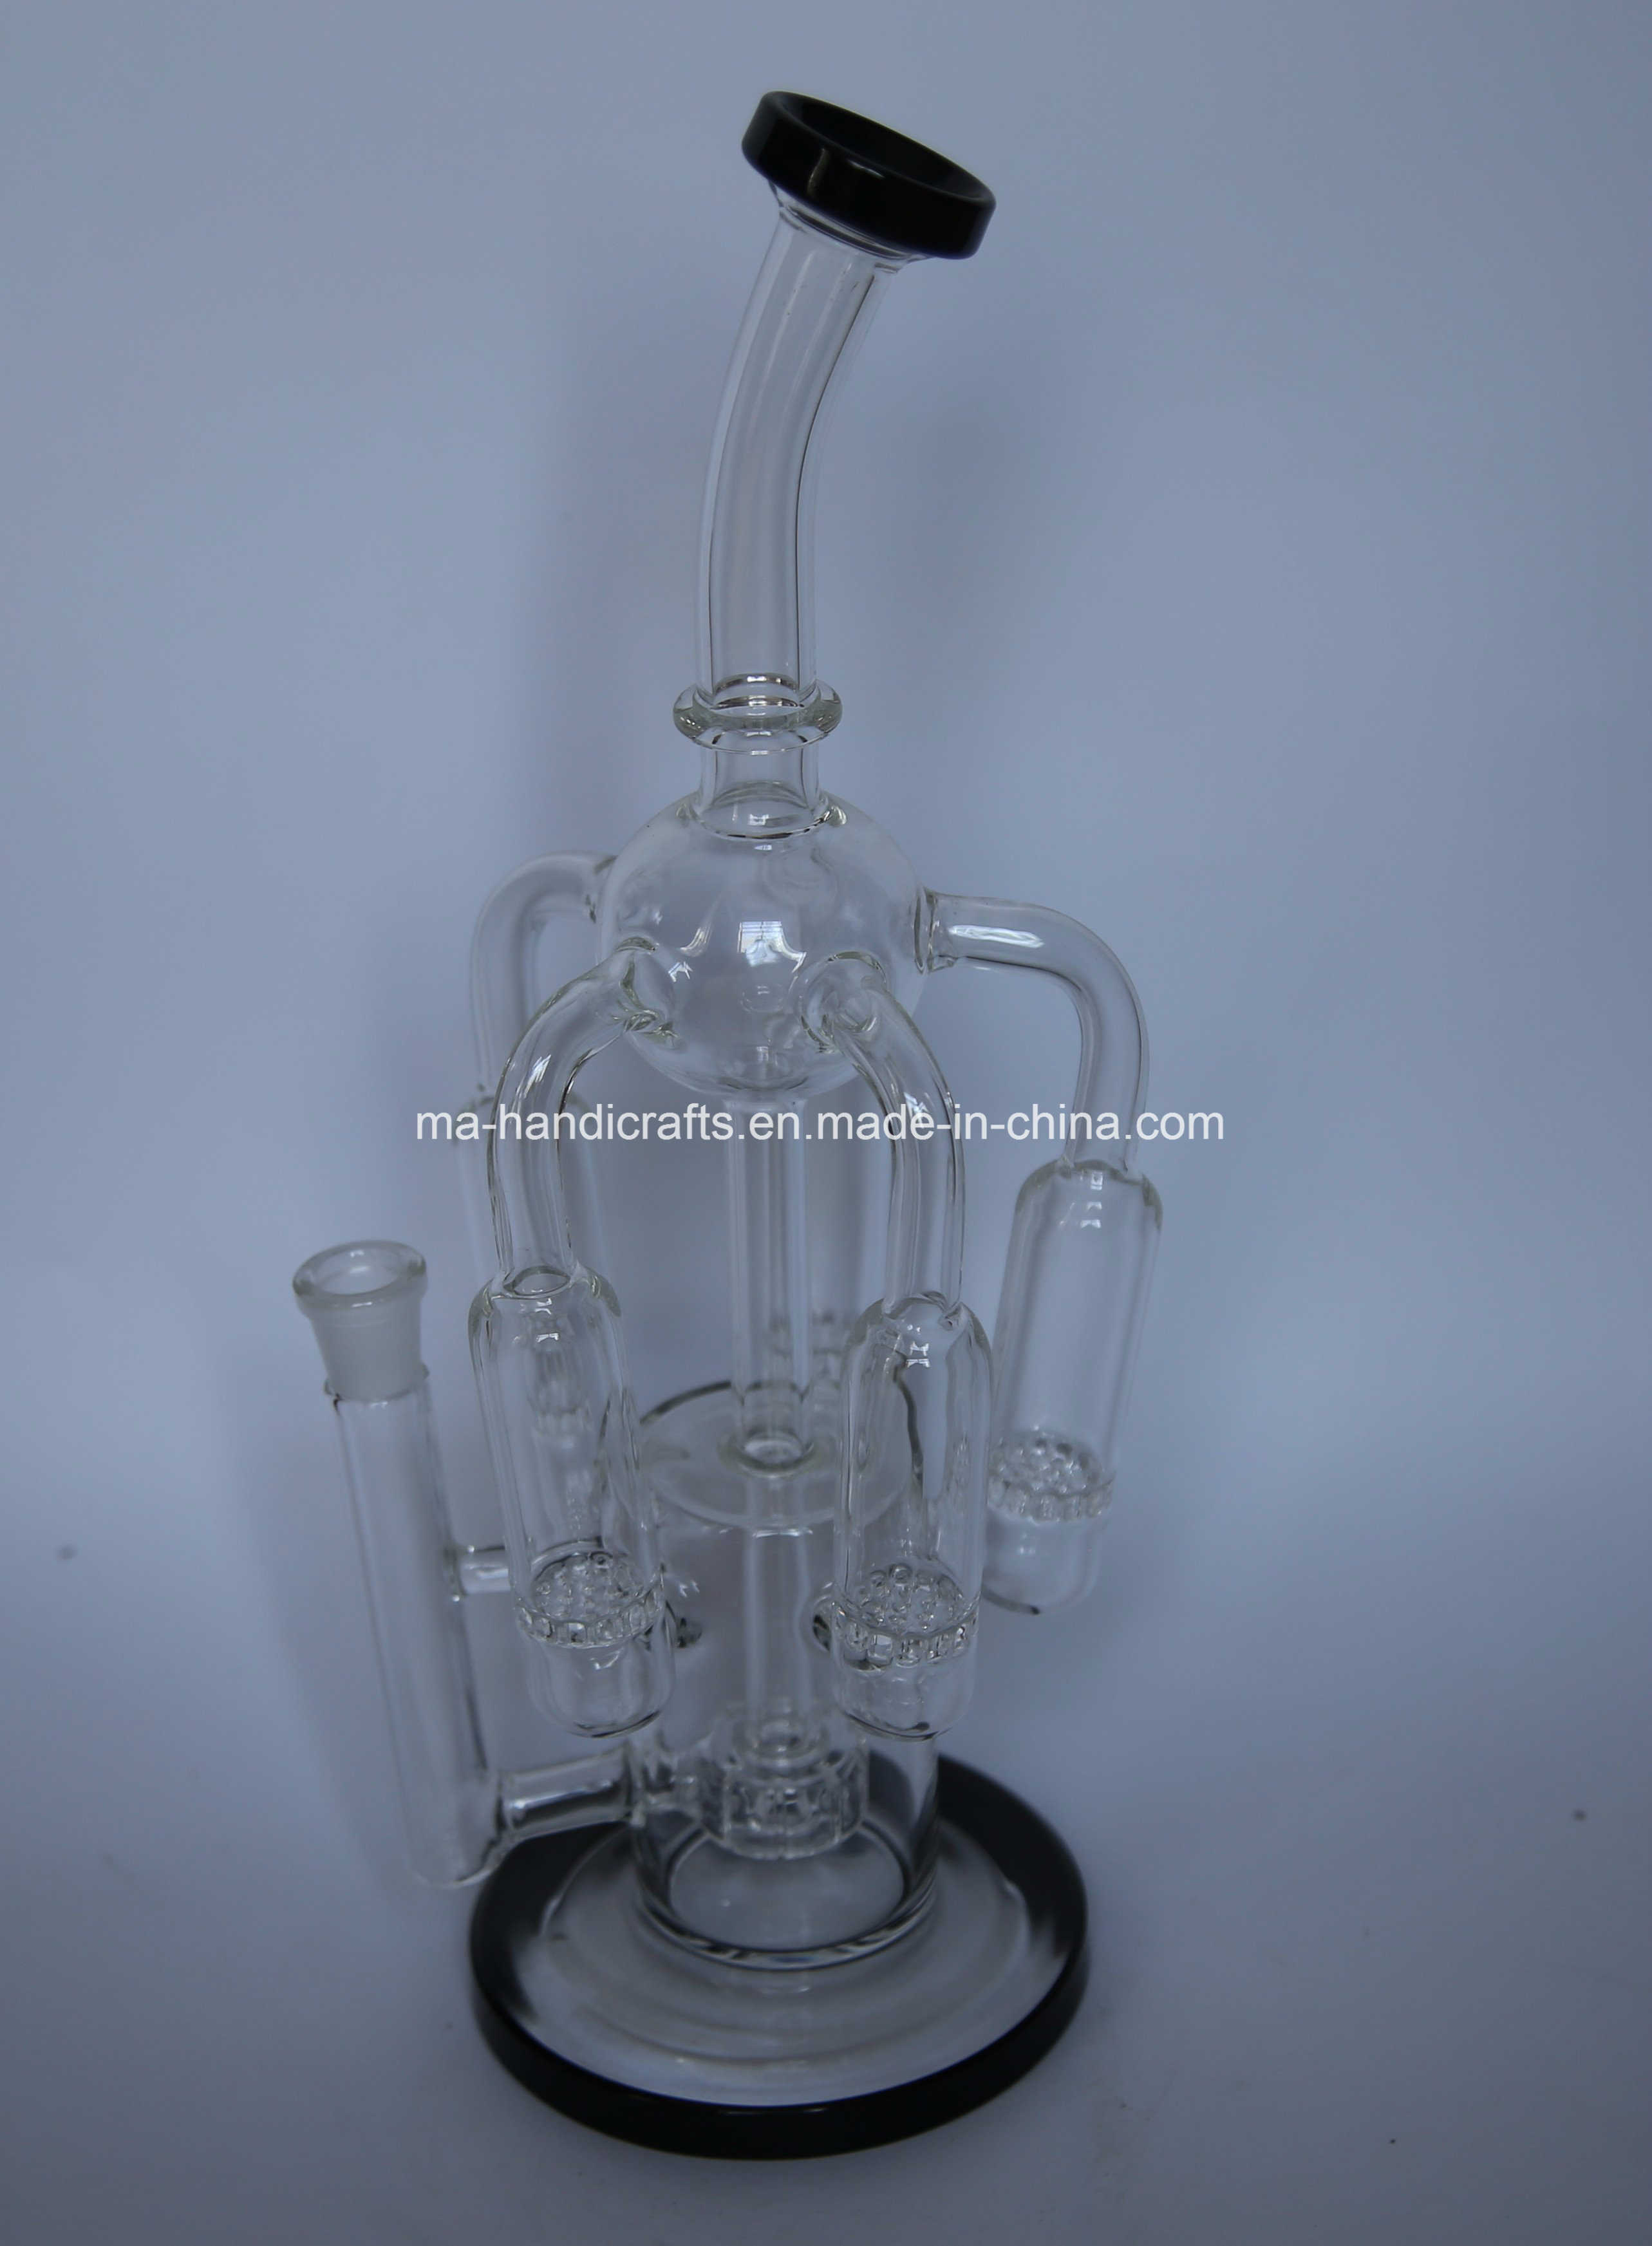 "14"" Hottest Black Boro Glass Bubbler for Smoking"